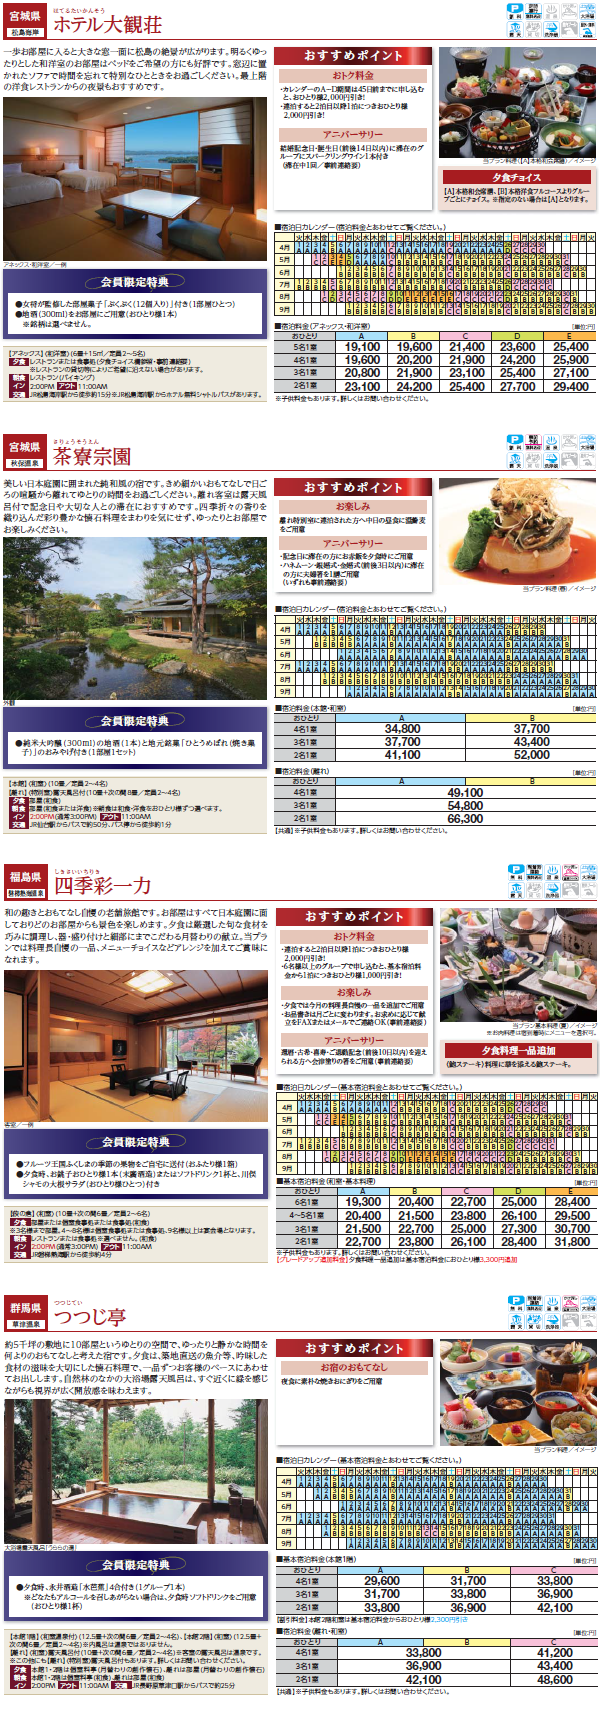 stay_plan_ryokan_1403_5